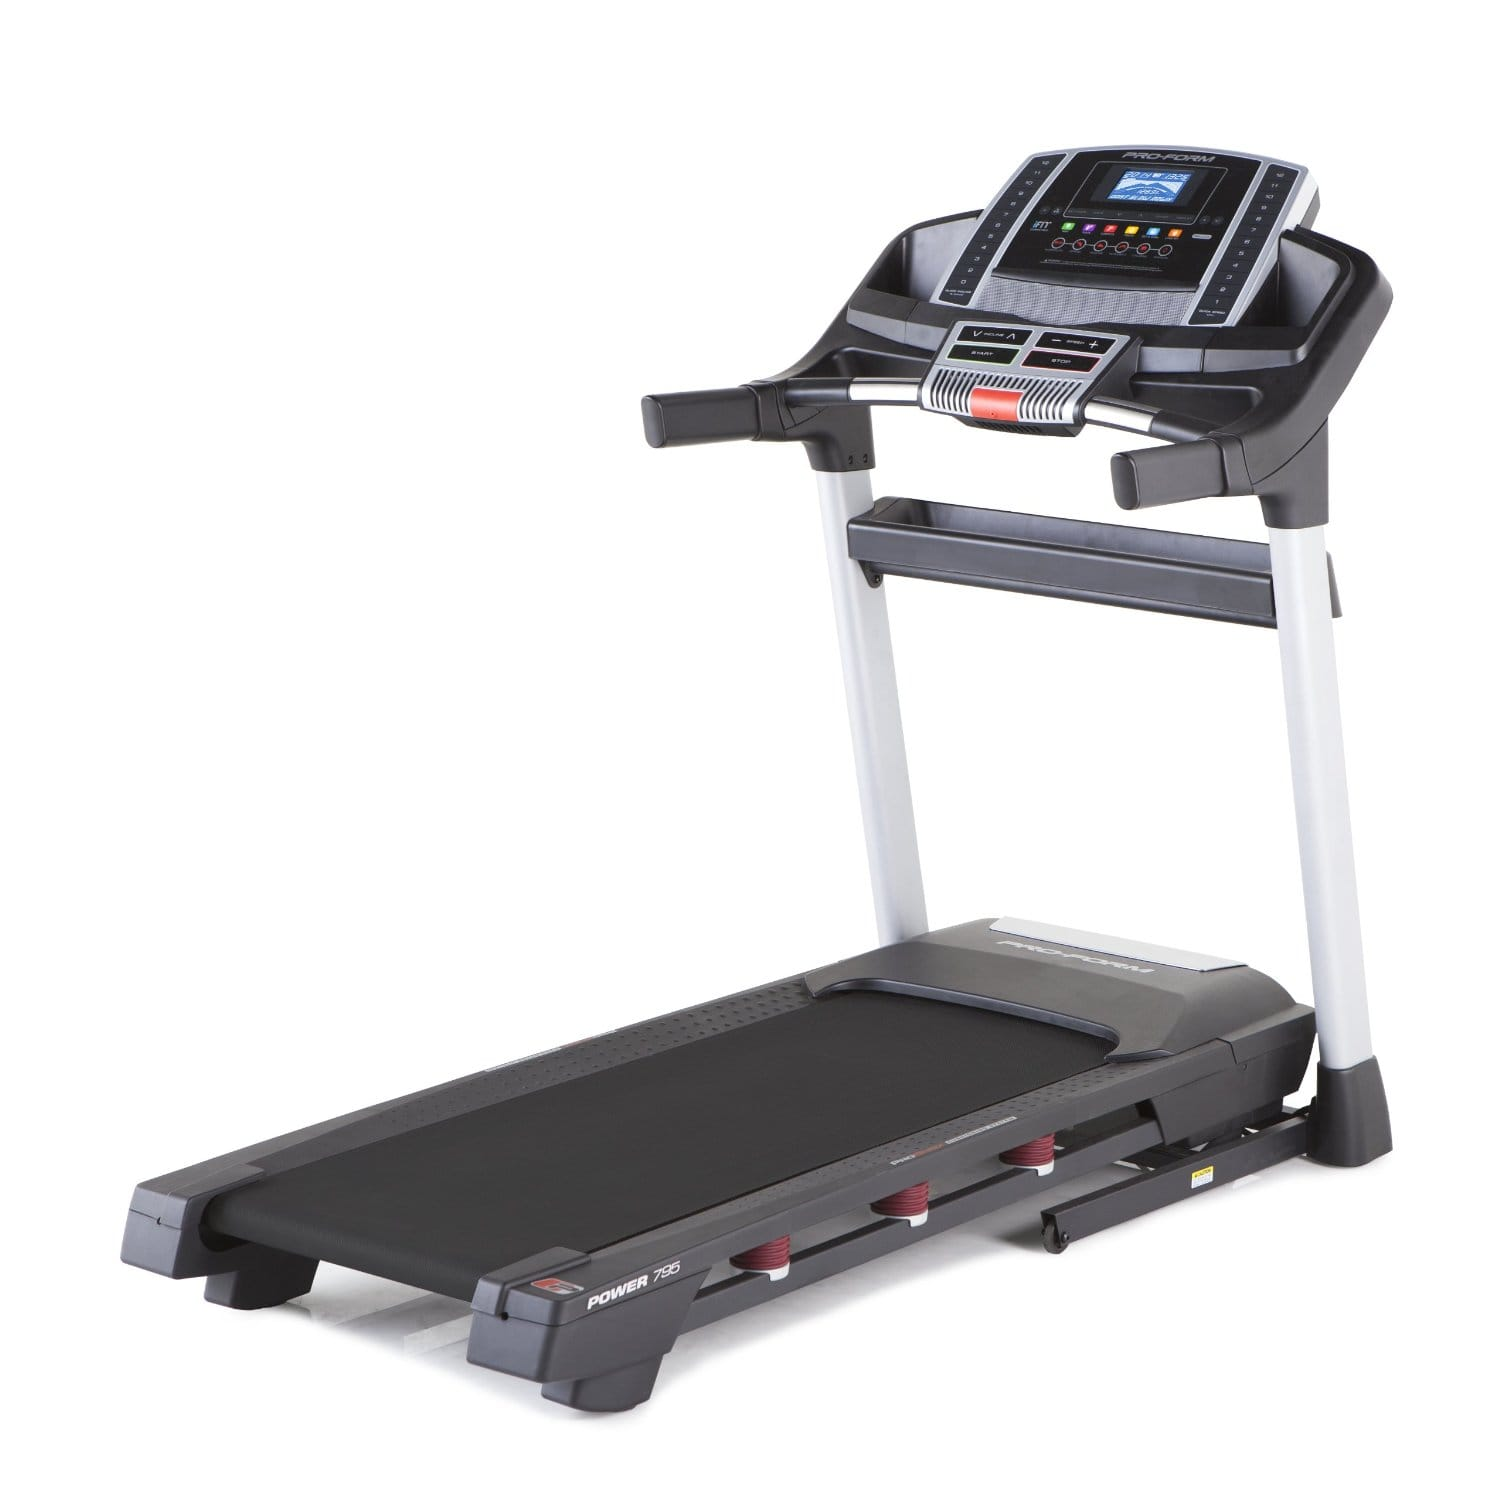 Proform Power Sensitive 7 0 Exercise Bike: Best Treadmills With Comparisons